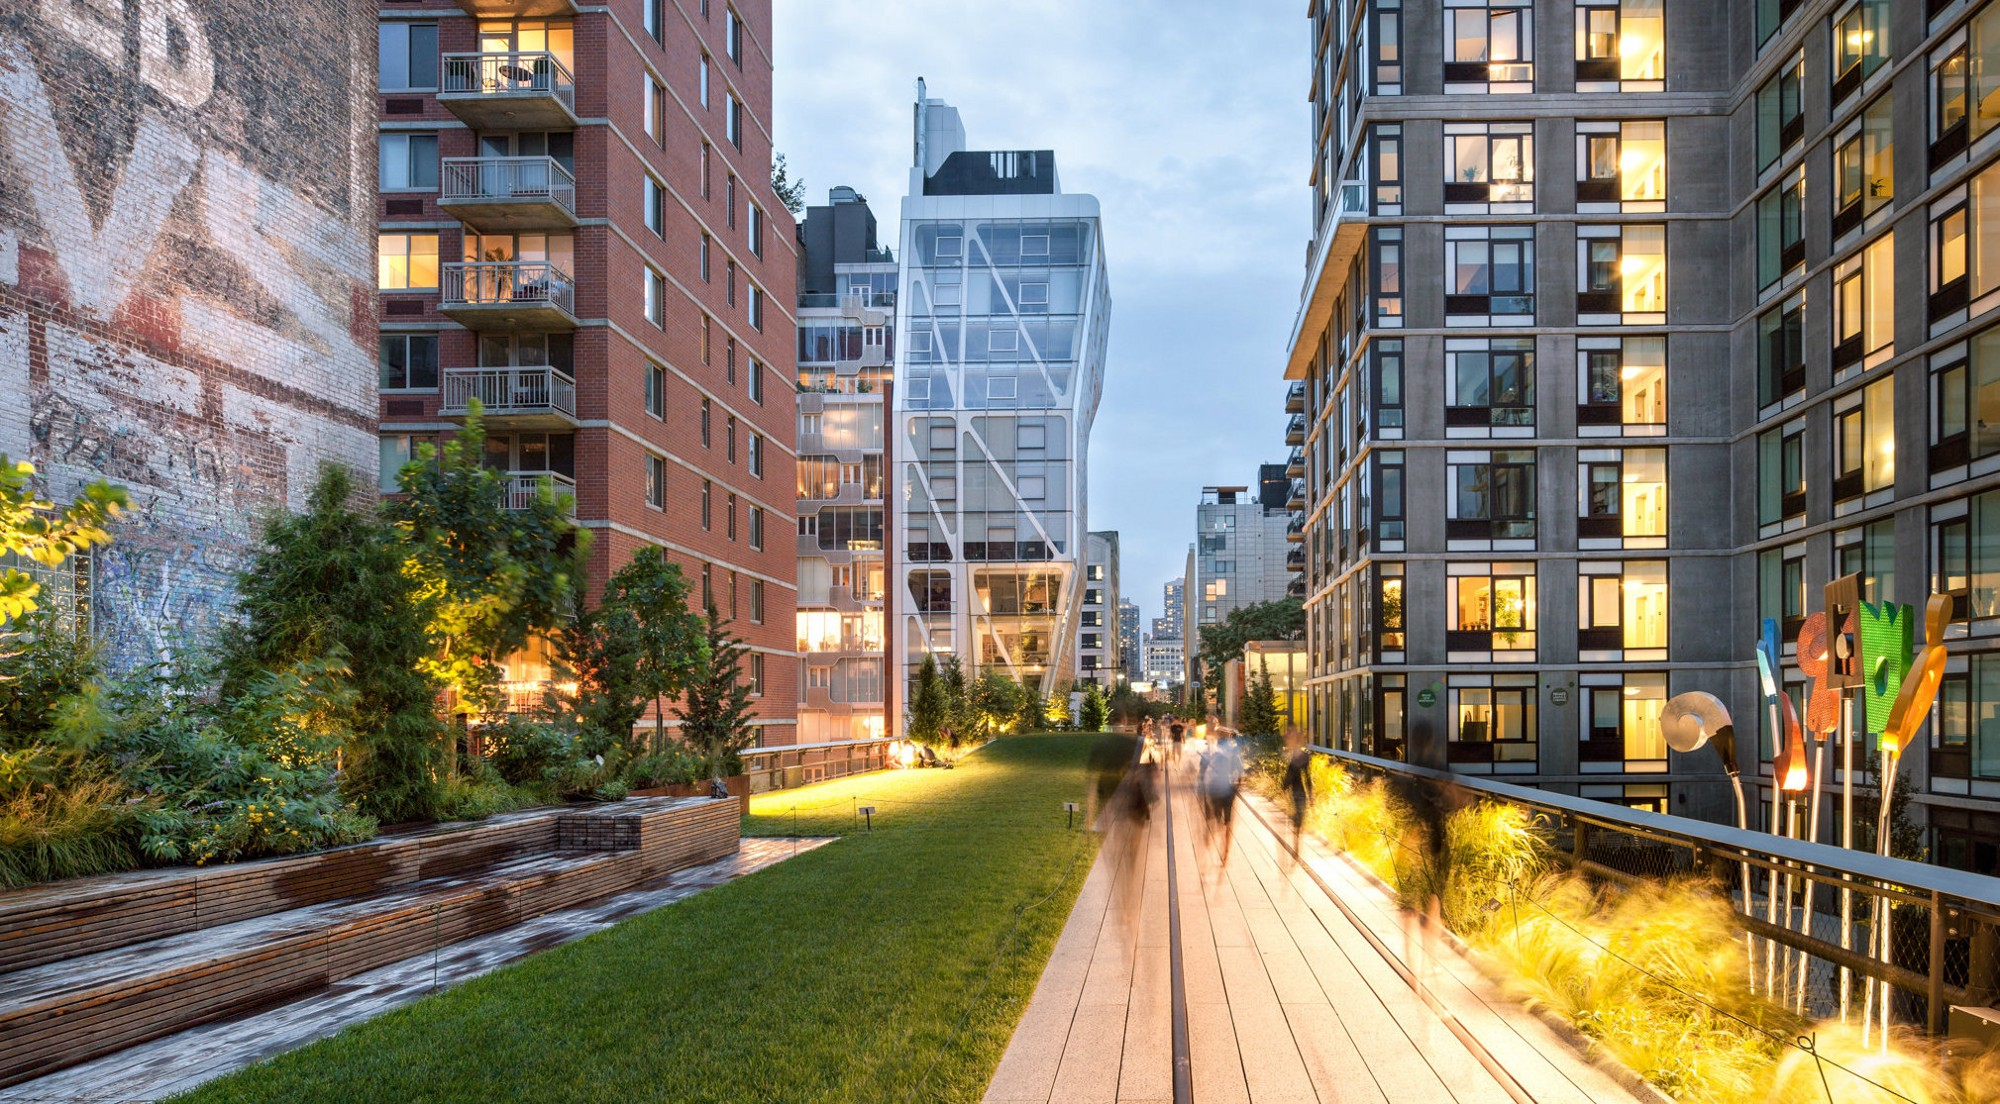 New York City's High Line is an elevated section of a disused New York City Railroad tracks on the Lower West Side of Manhattan. The tracks have since been converted into a public park. The project spurred real estate development in the neighborhoods that lie along the High Line.